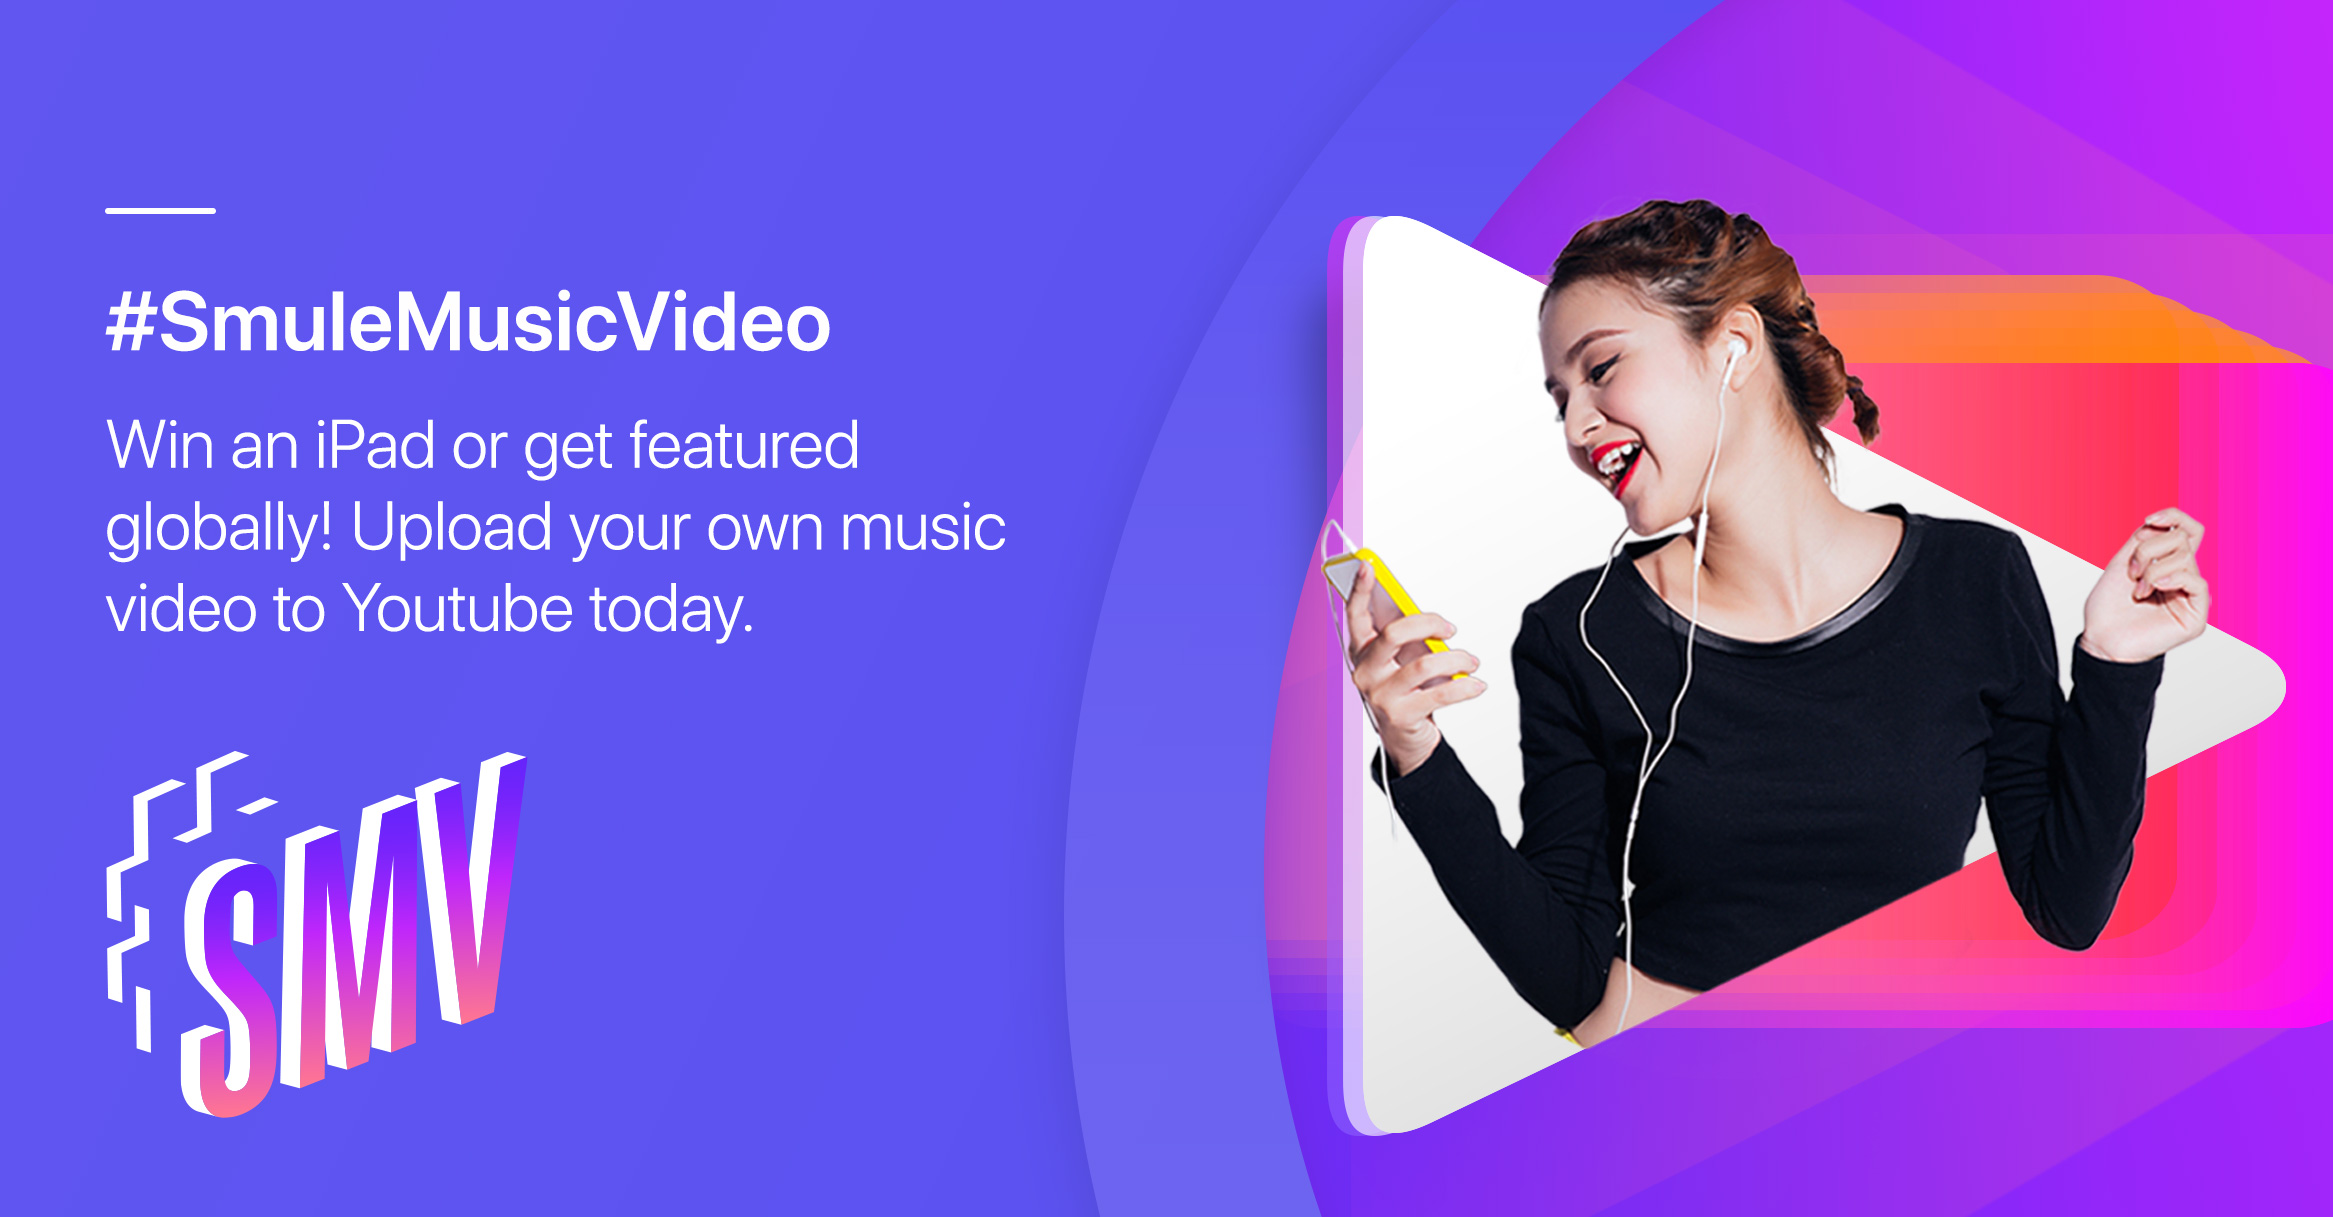 Smule blog: #SmuleMusicVideo Contest - Smule Blog Posts